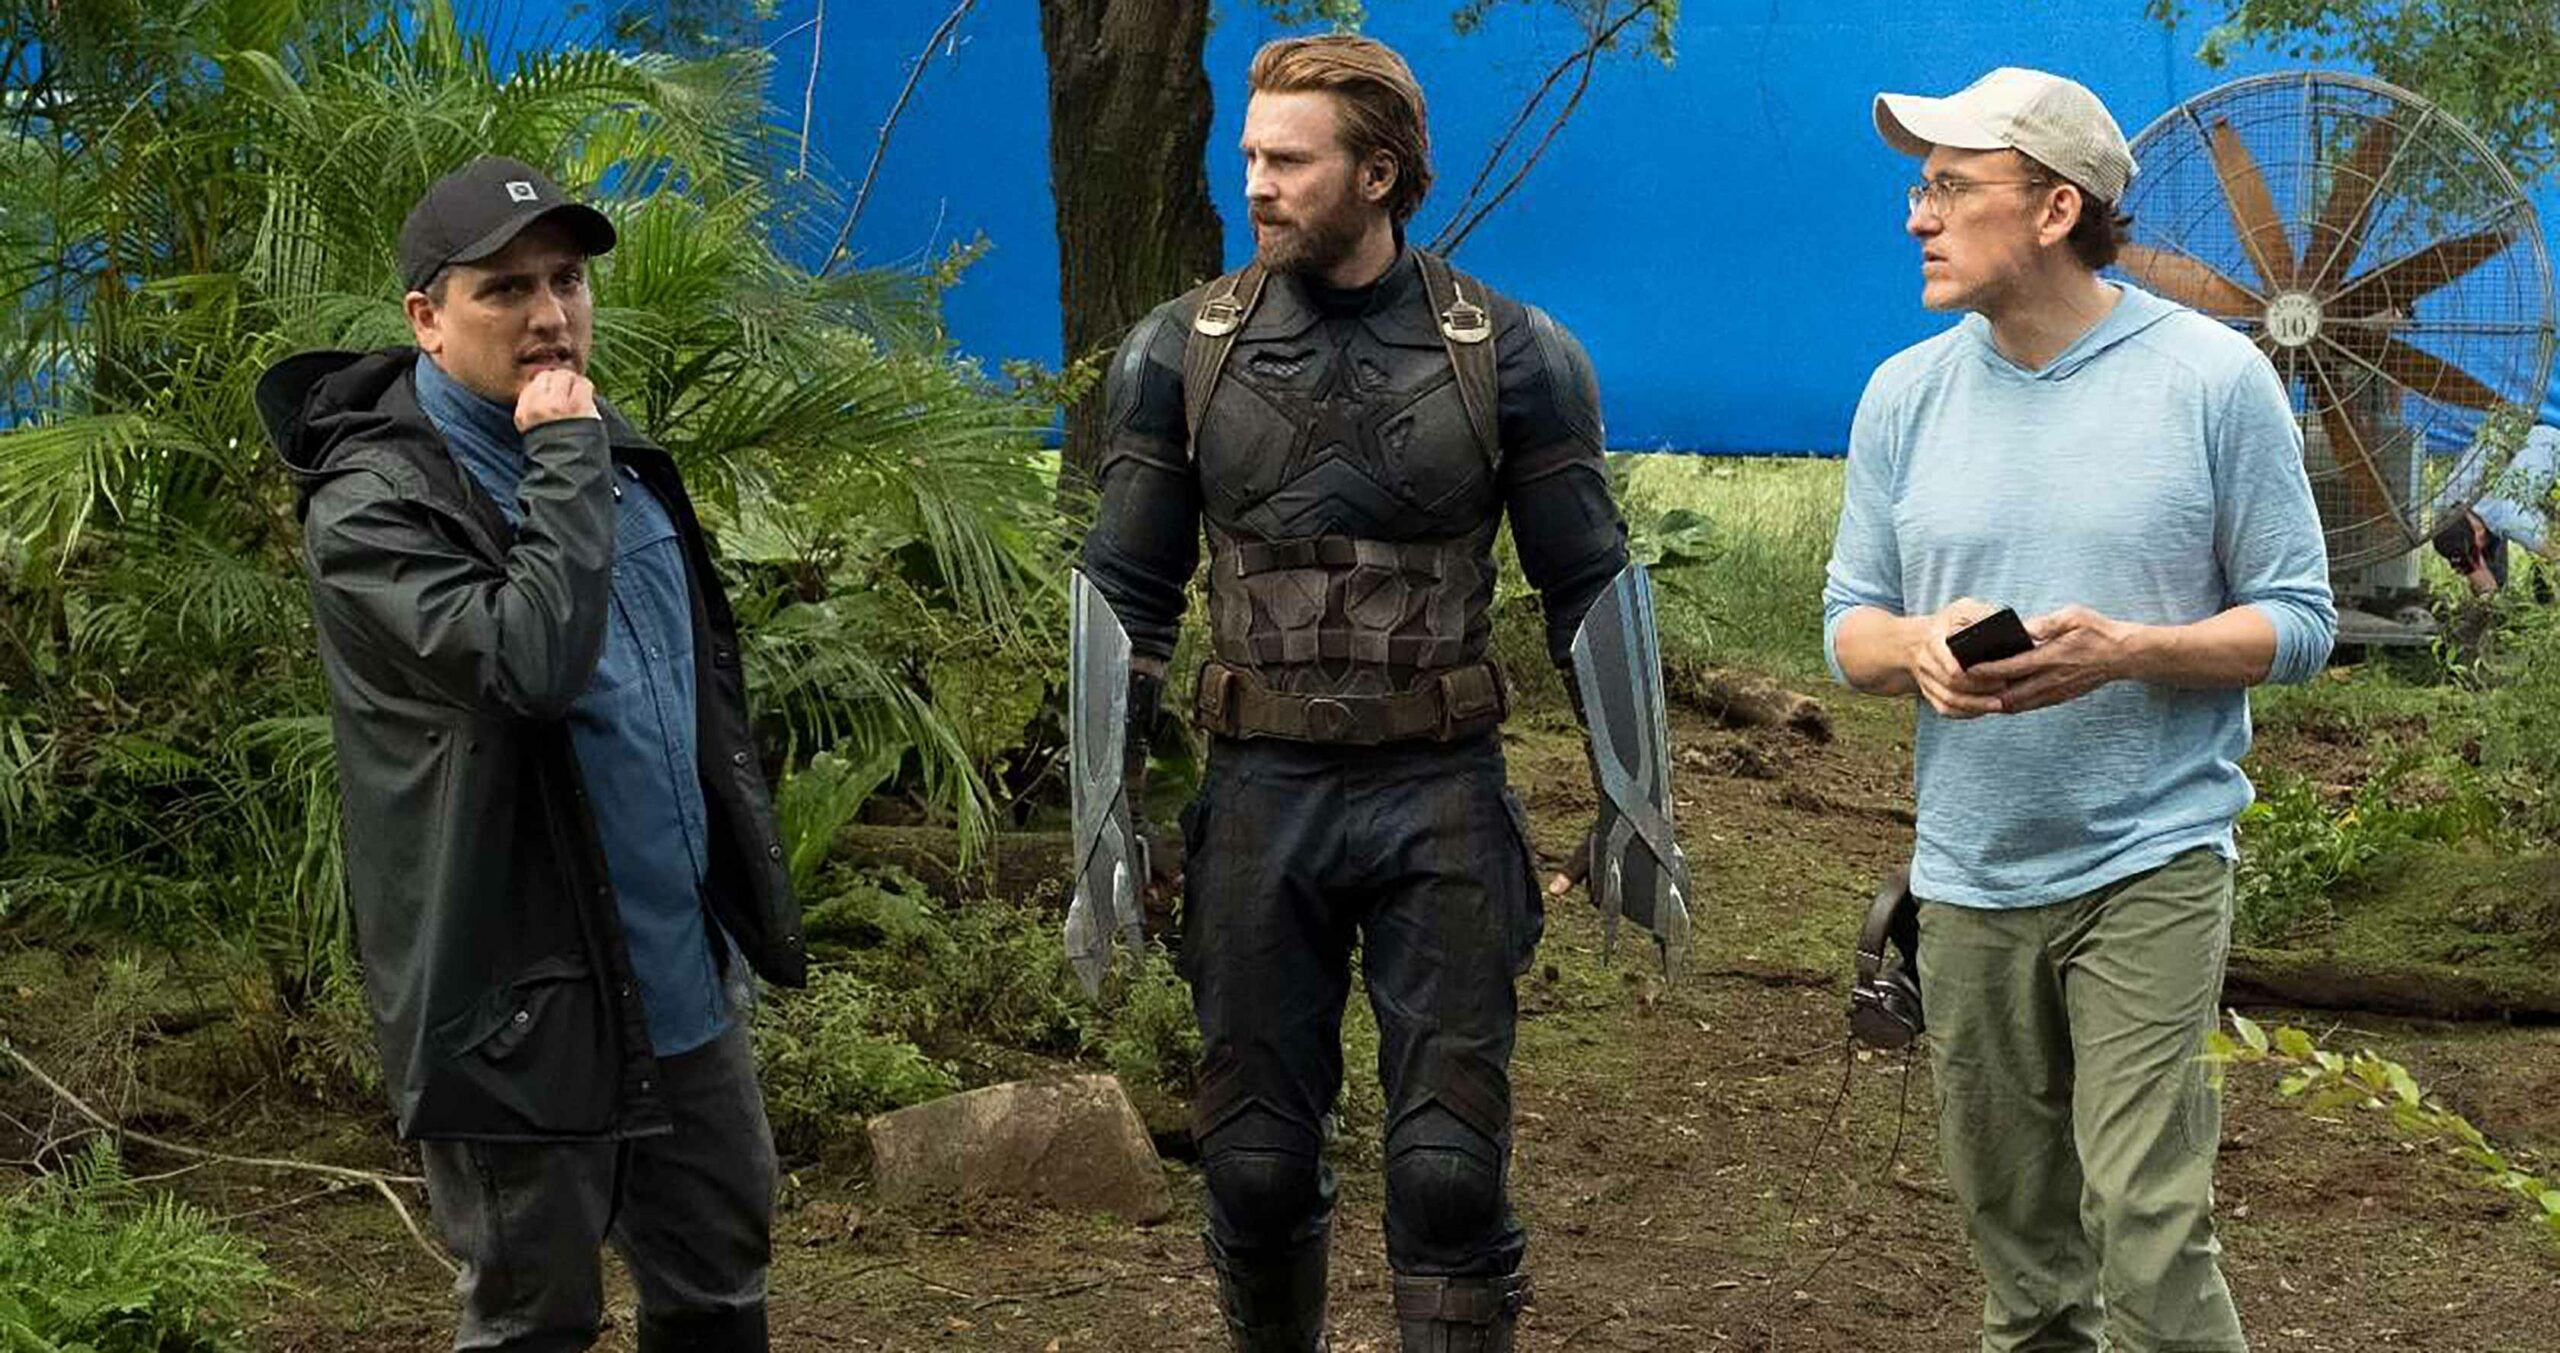 Chris Evans with the Russo Brothers